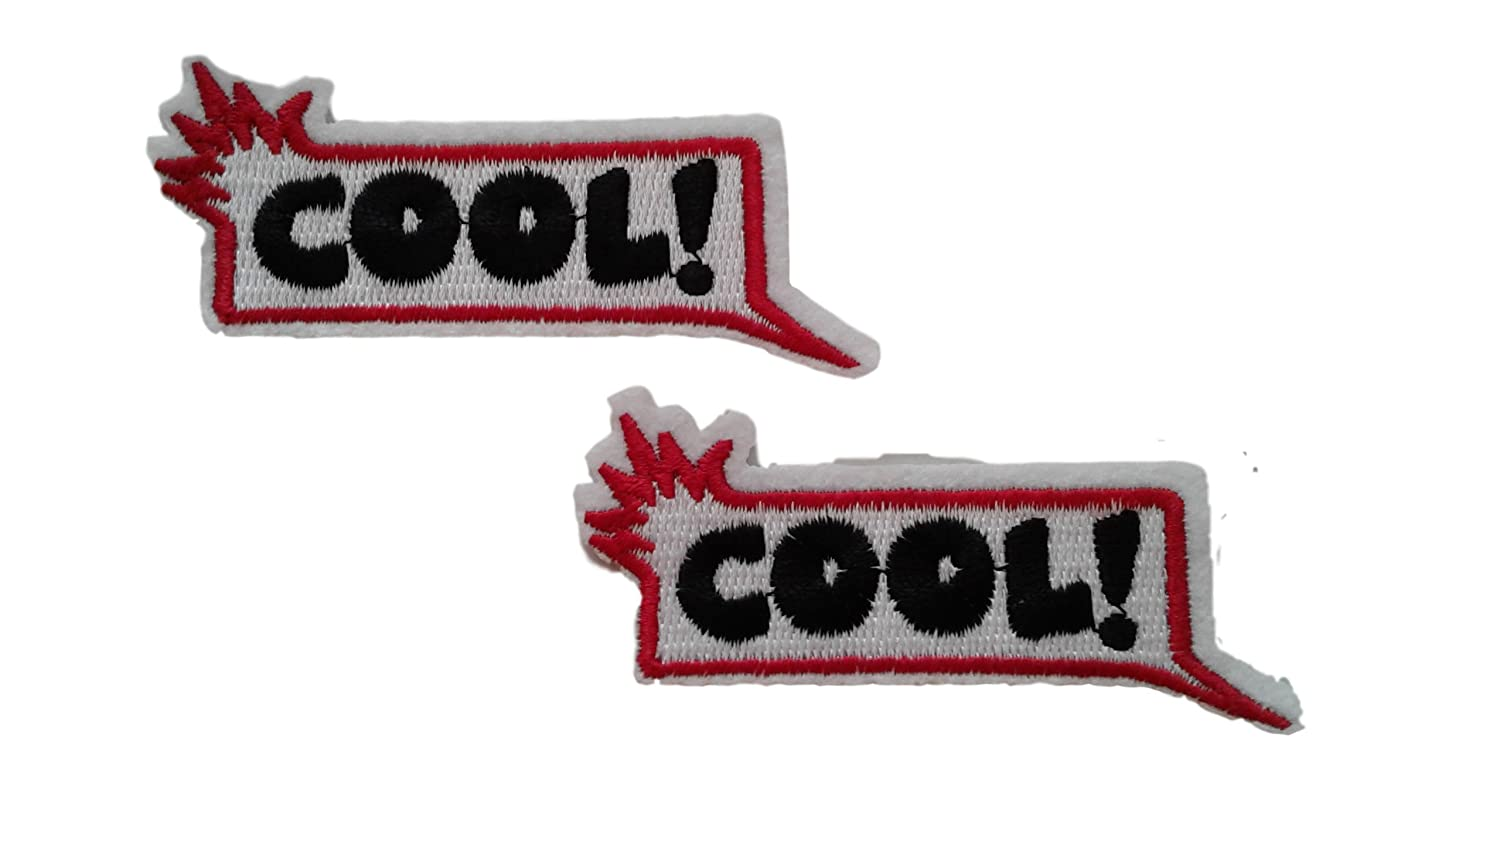 2 pieces COOL WORD Iron On Patch Applique Motif Biker Symbol Decal 3.4 x 1.7 inches (8.5 x 4.3 cm)